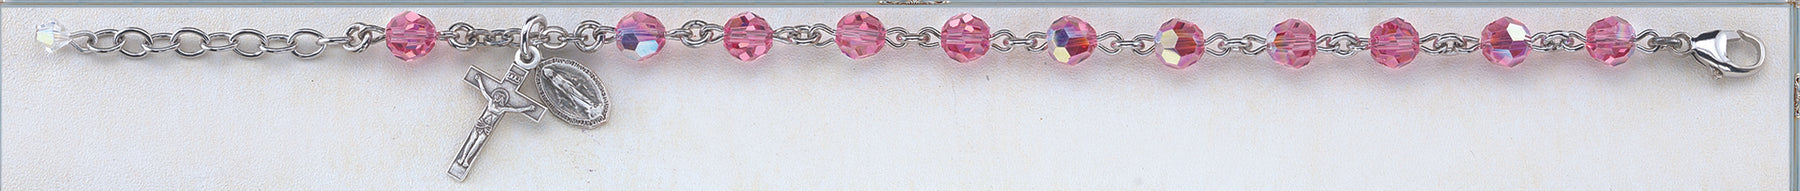 Pink Round Faceted Swarovski Crystal Sterling Bracelet